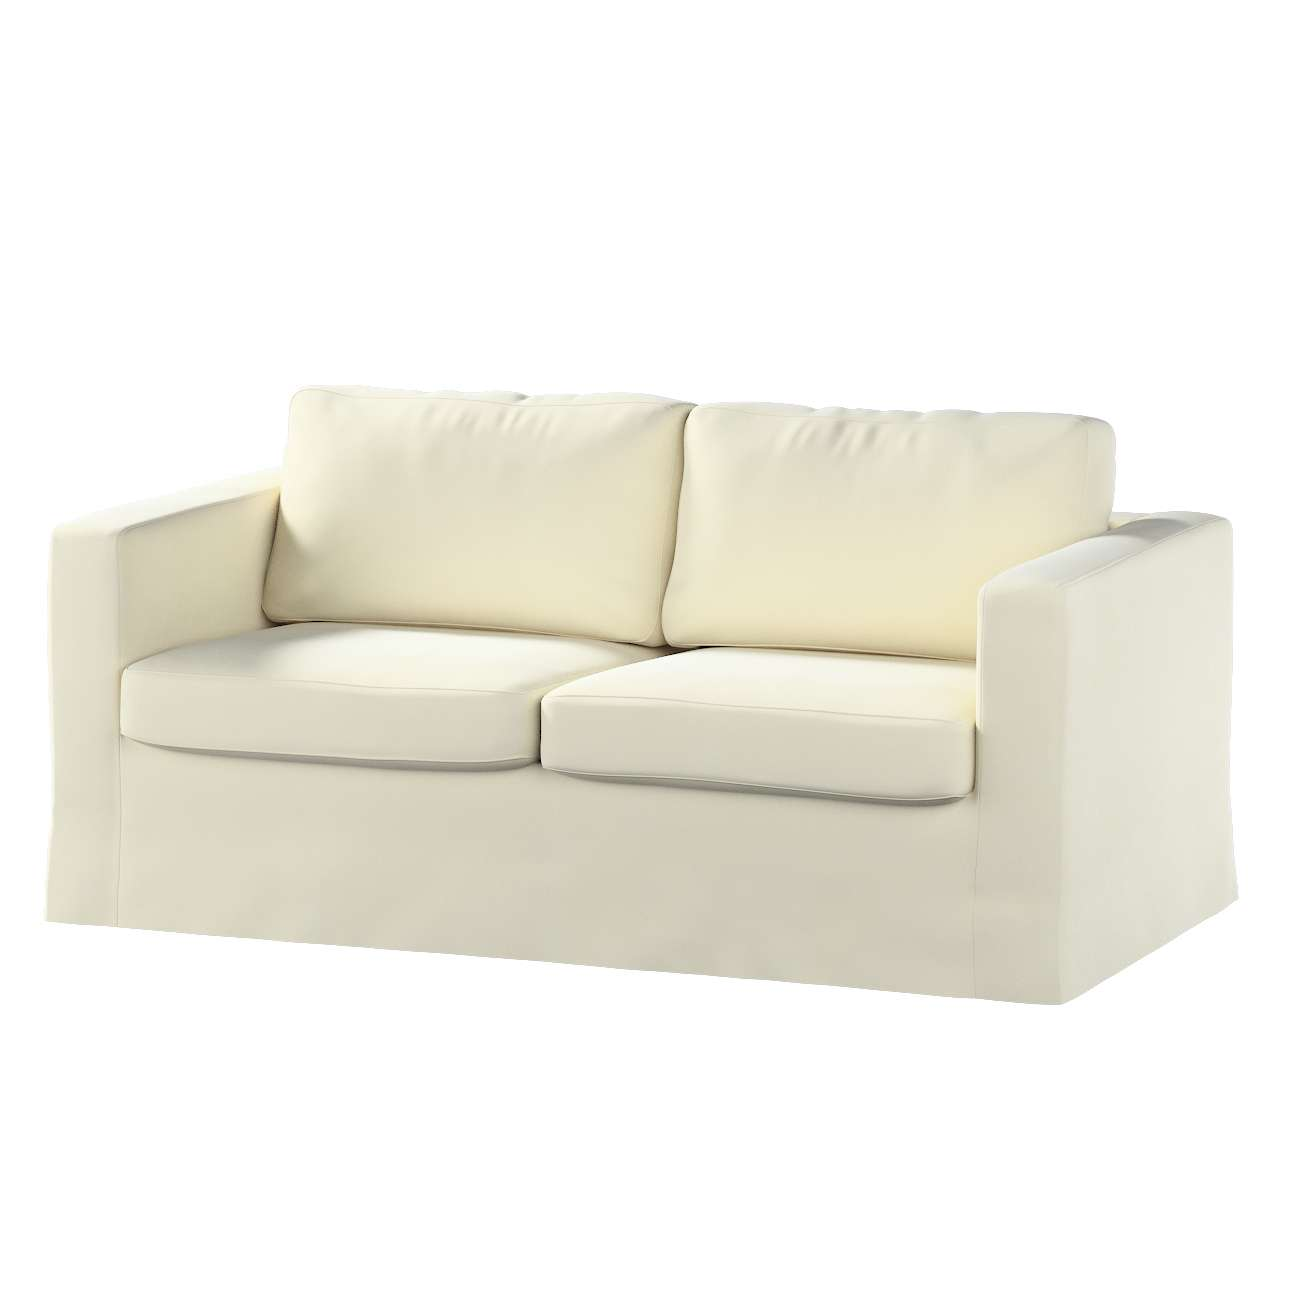 Floor length Karlstad 2-seater sofa cover in collection Velvet, fabric: 704-10